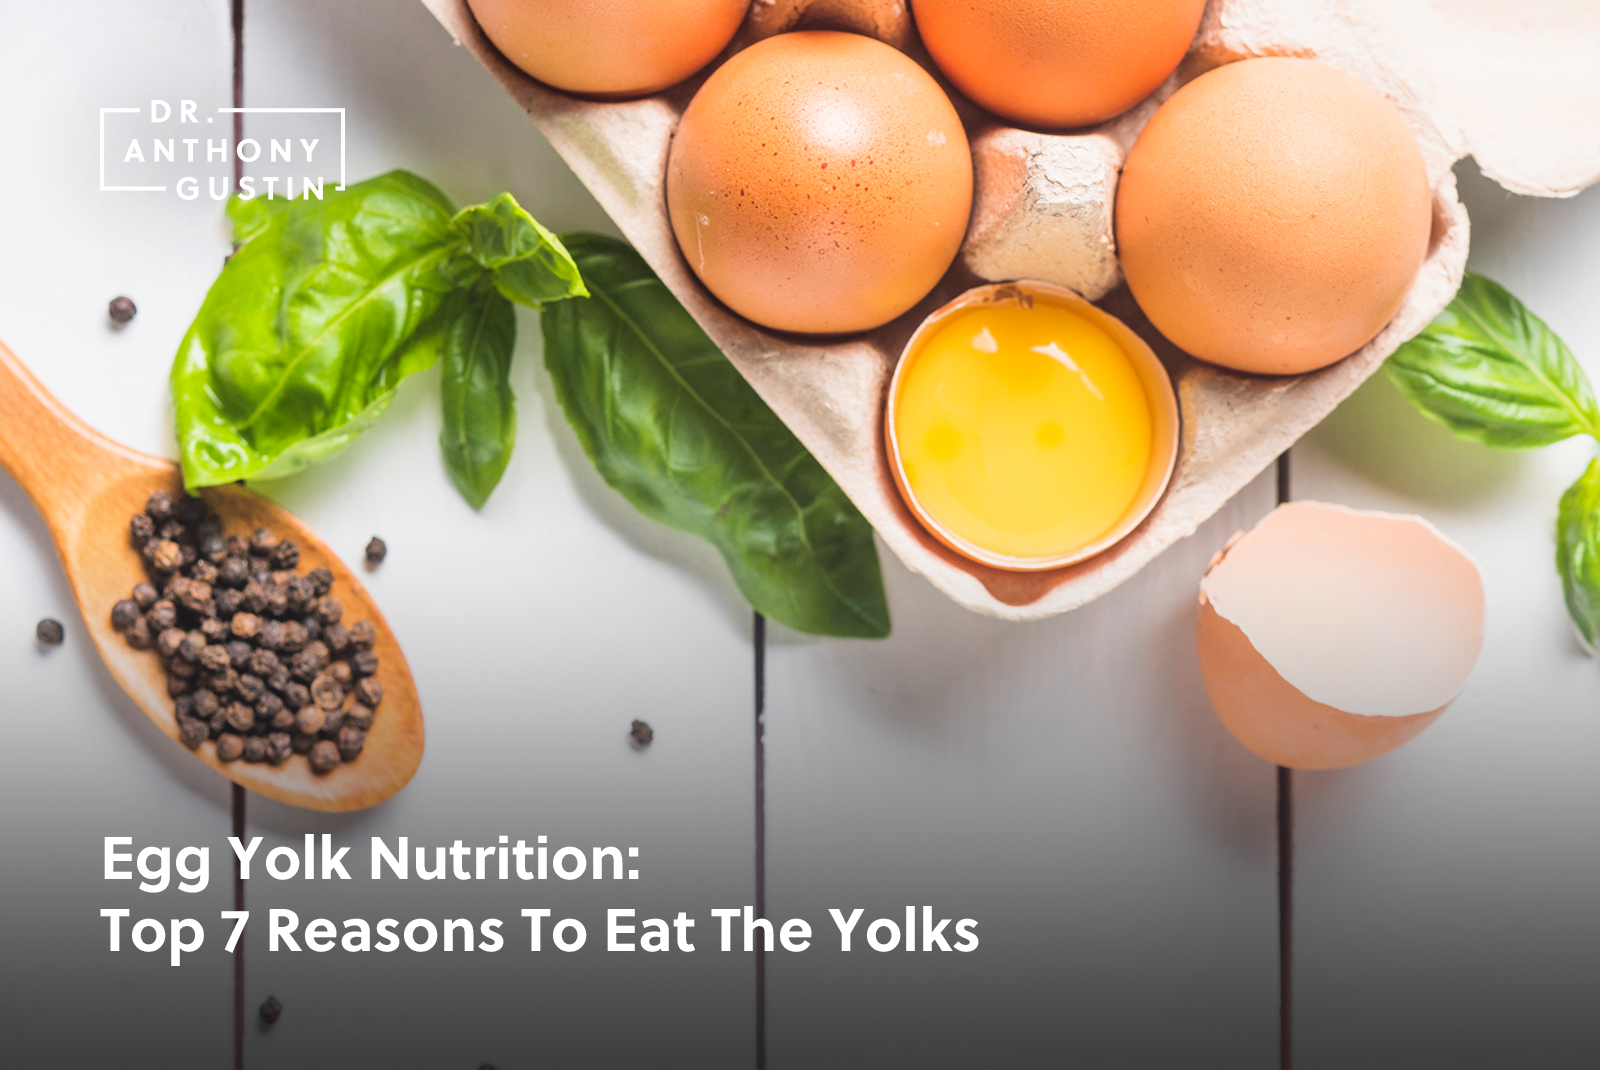 Egg Yolk Nutrition: Top 7 Reasons To Eat The Yolks